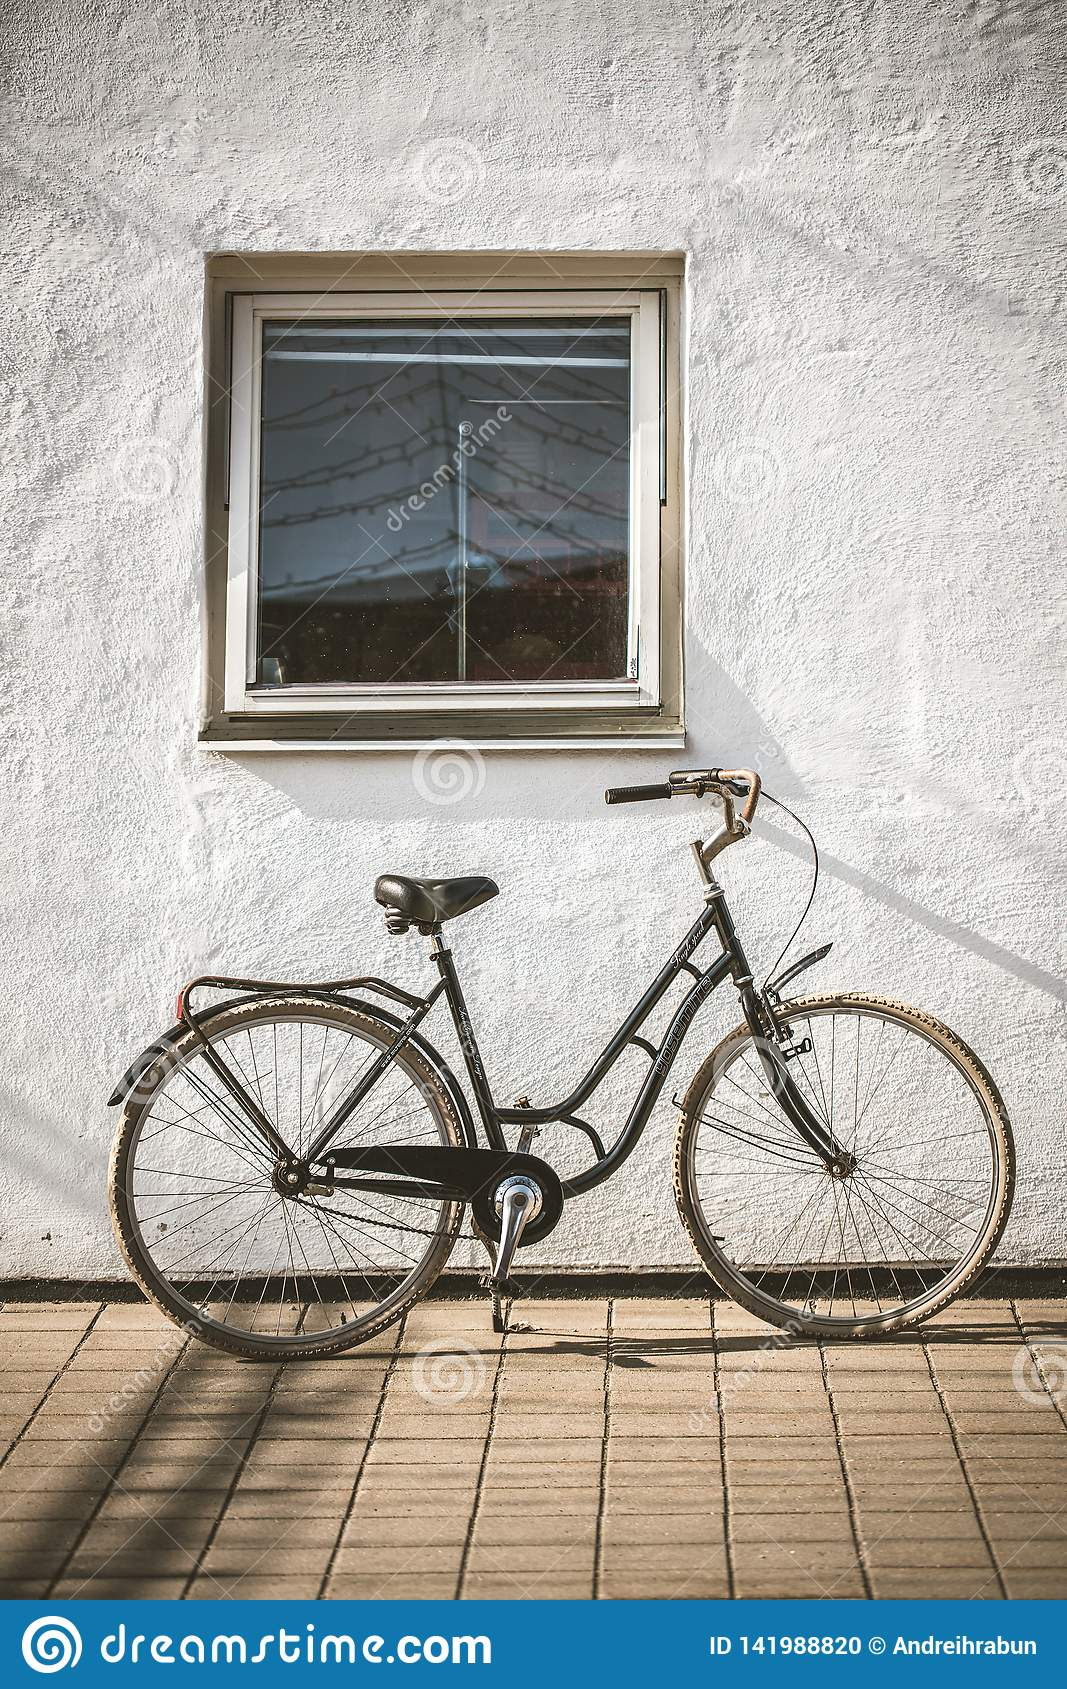 Retro Bicycle On Roadside With Vintage Concrete Wall